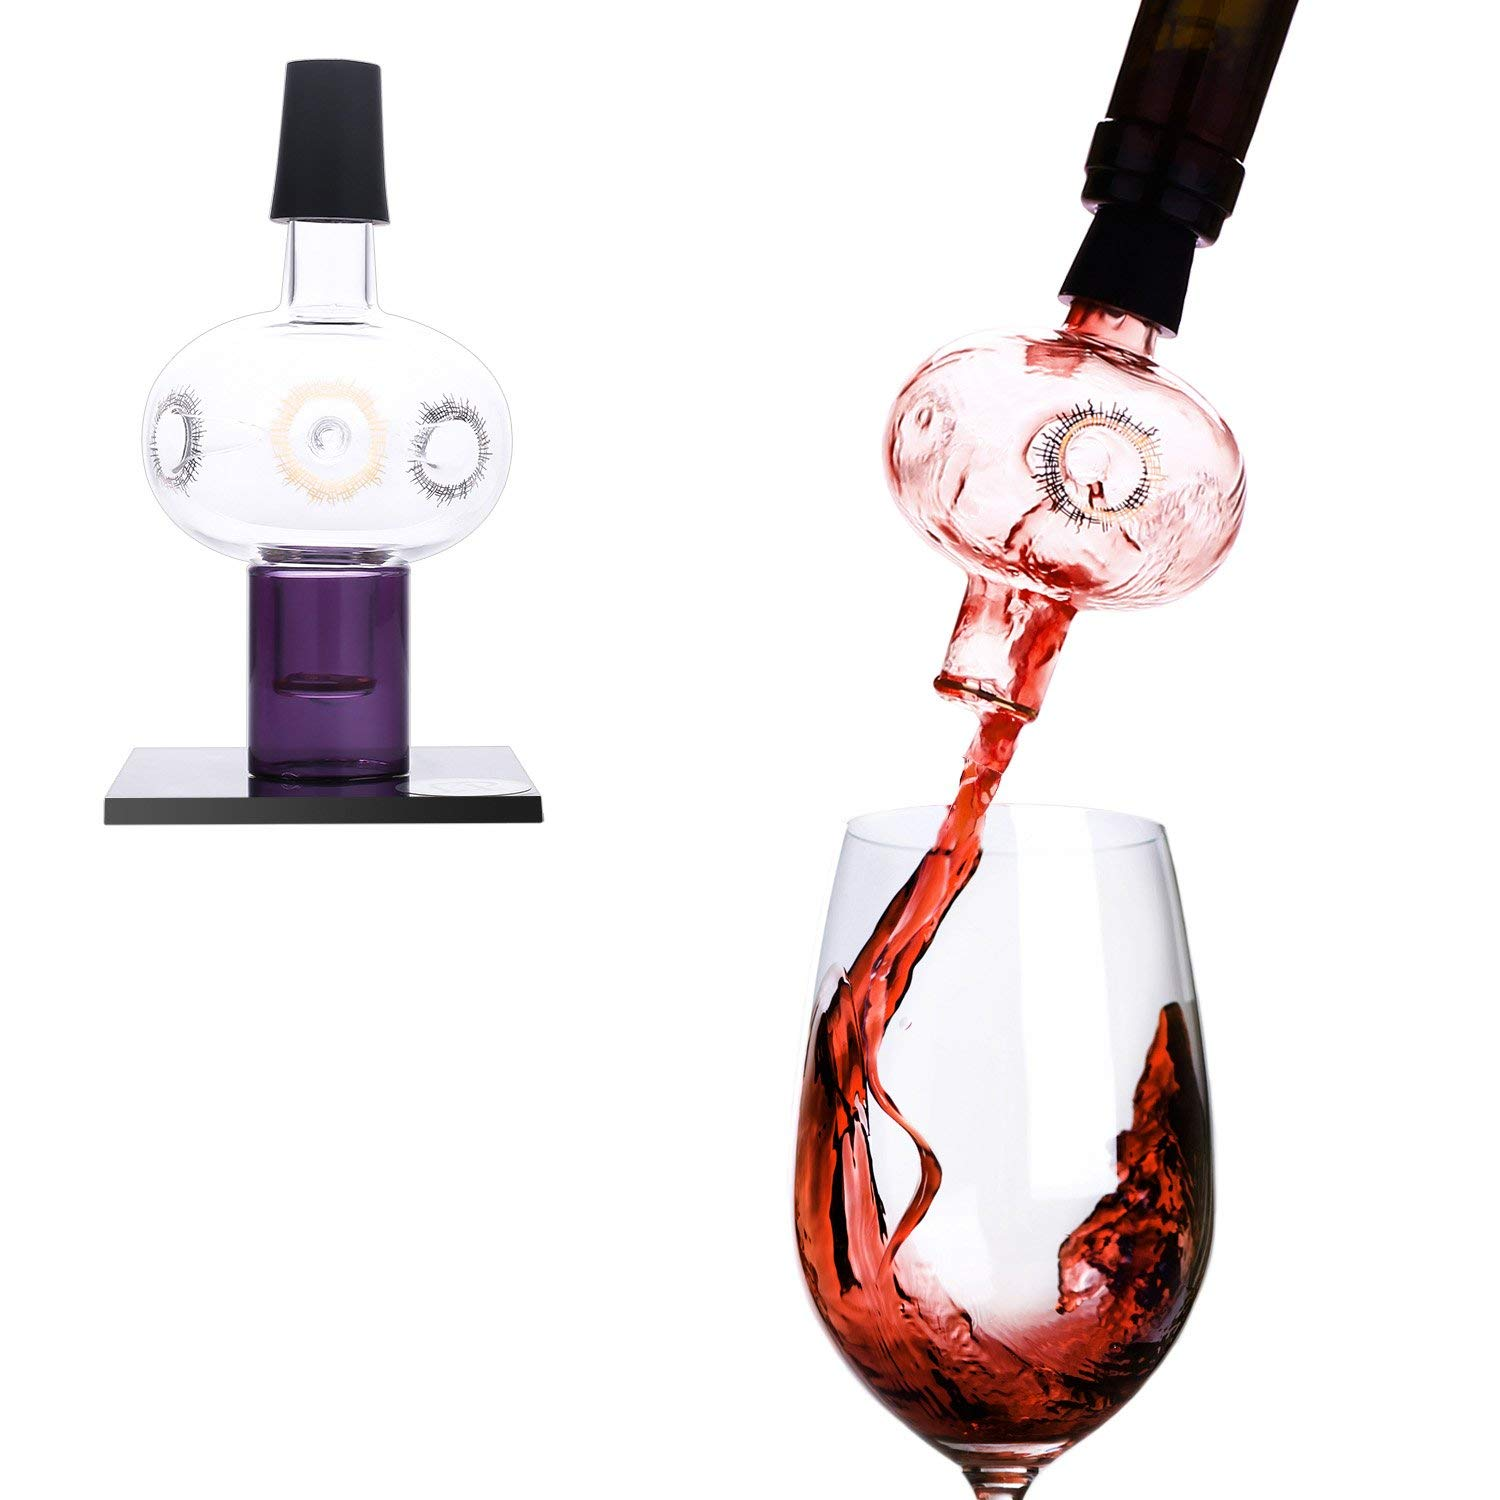 Lovinpro Wine Aerator Pourer Premium Glass Bottle-top Aerating Pourer and Decanter Spout Includes Dry Stand Gold Pattern